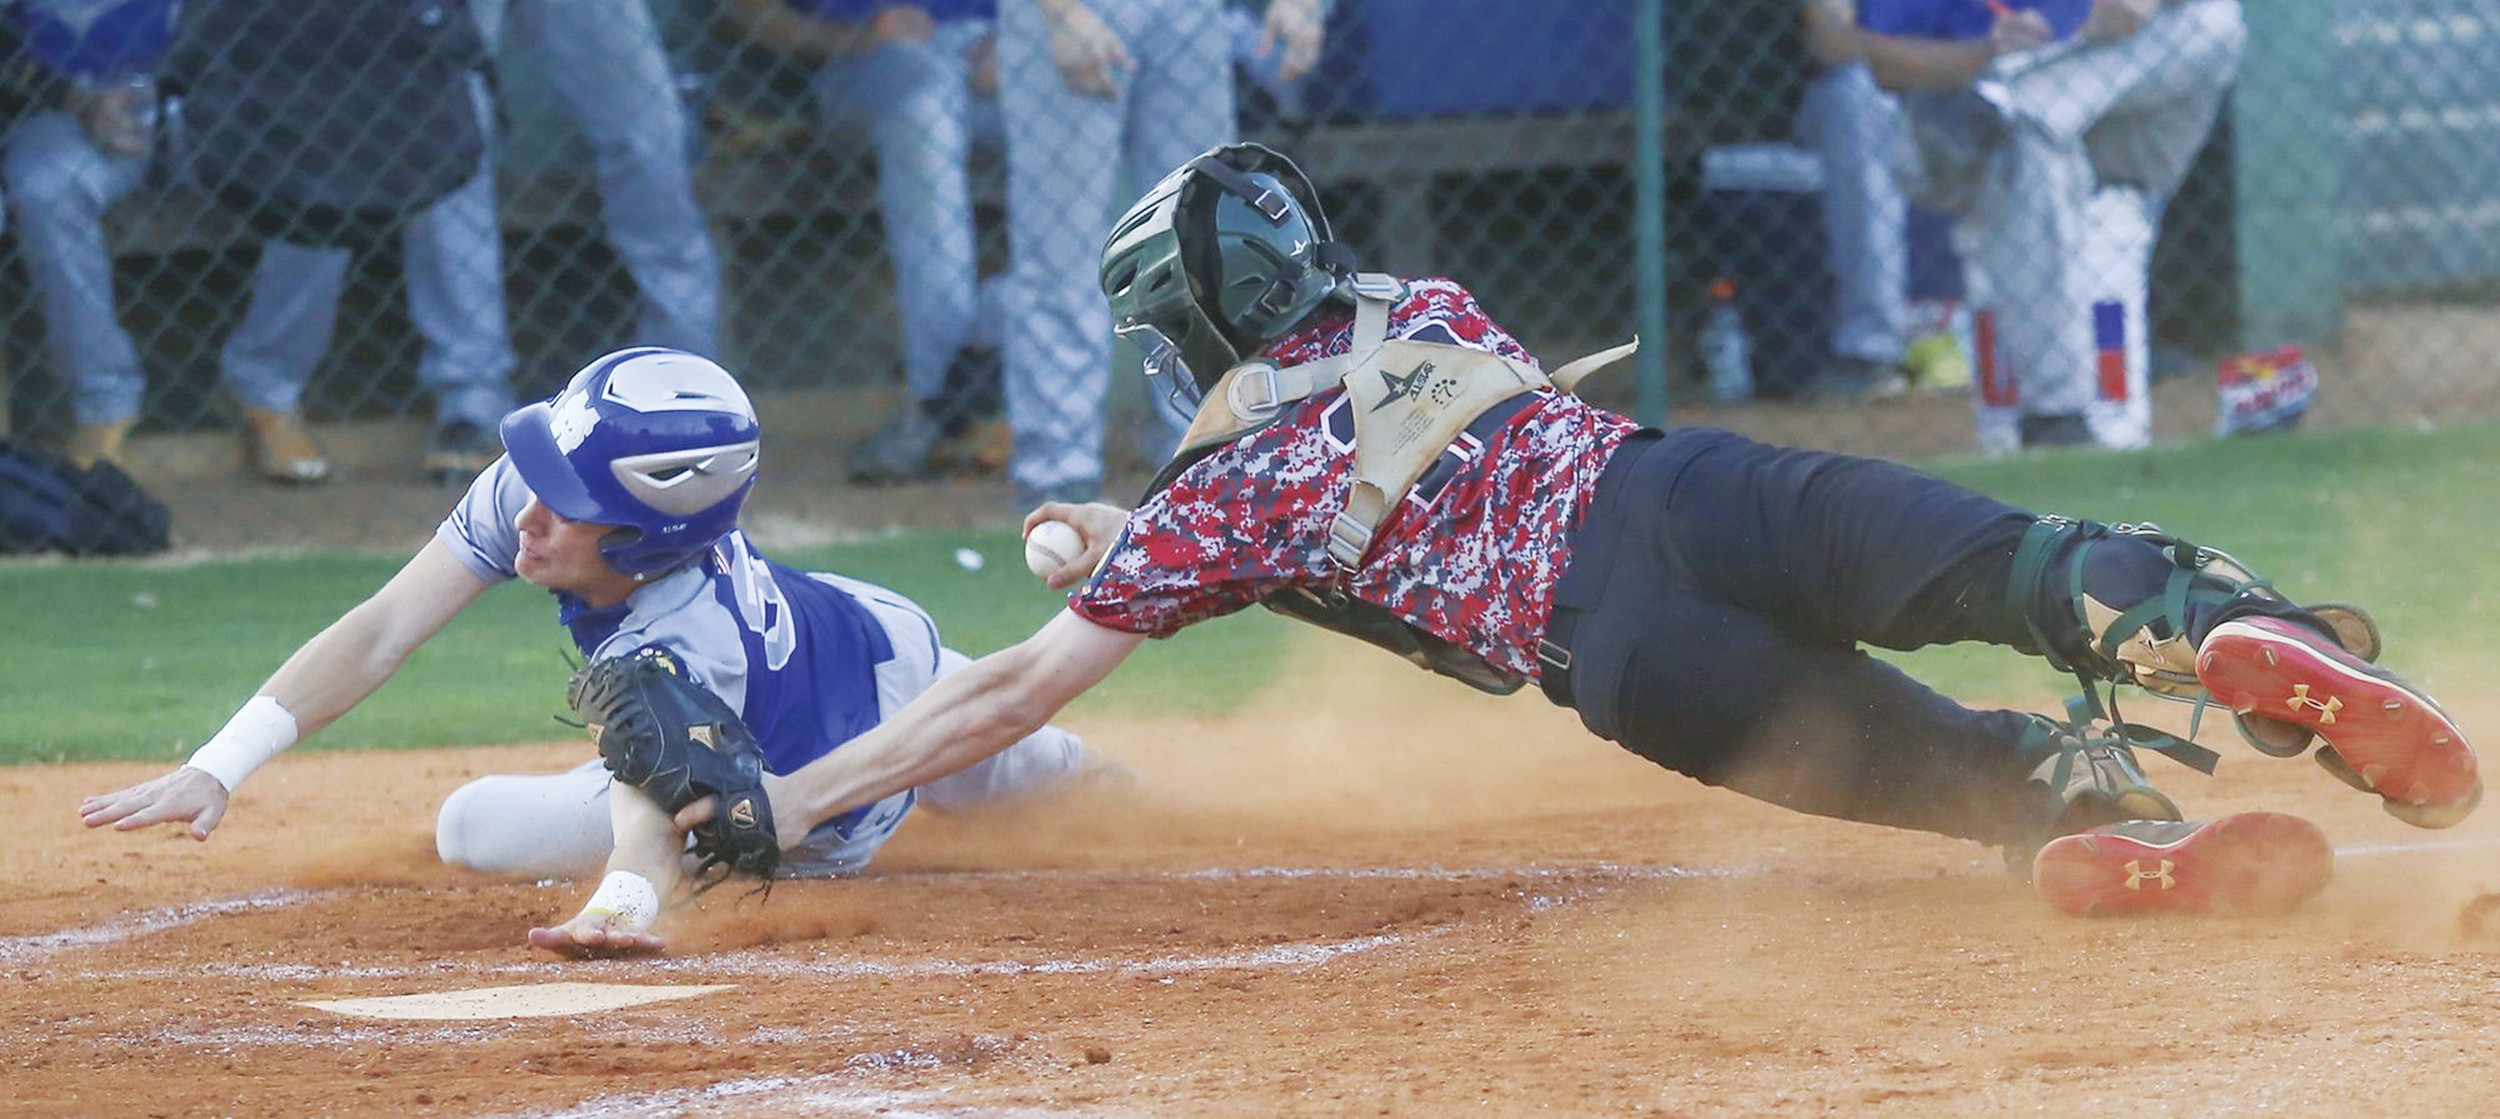 Manning-Santee Post 68's Morgan Morris, shown sliding into home, is one of several returning players from last year's 7-10 team that reached the American Legion state playoffs. Manning opens its season on Tuesday against Dalzell-Shaw.